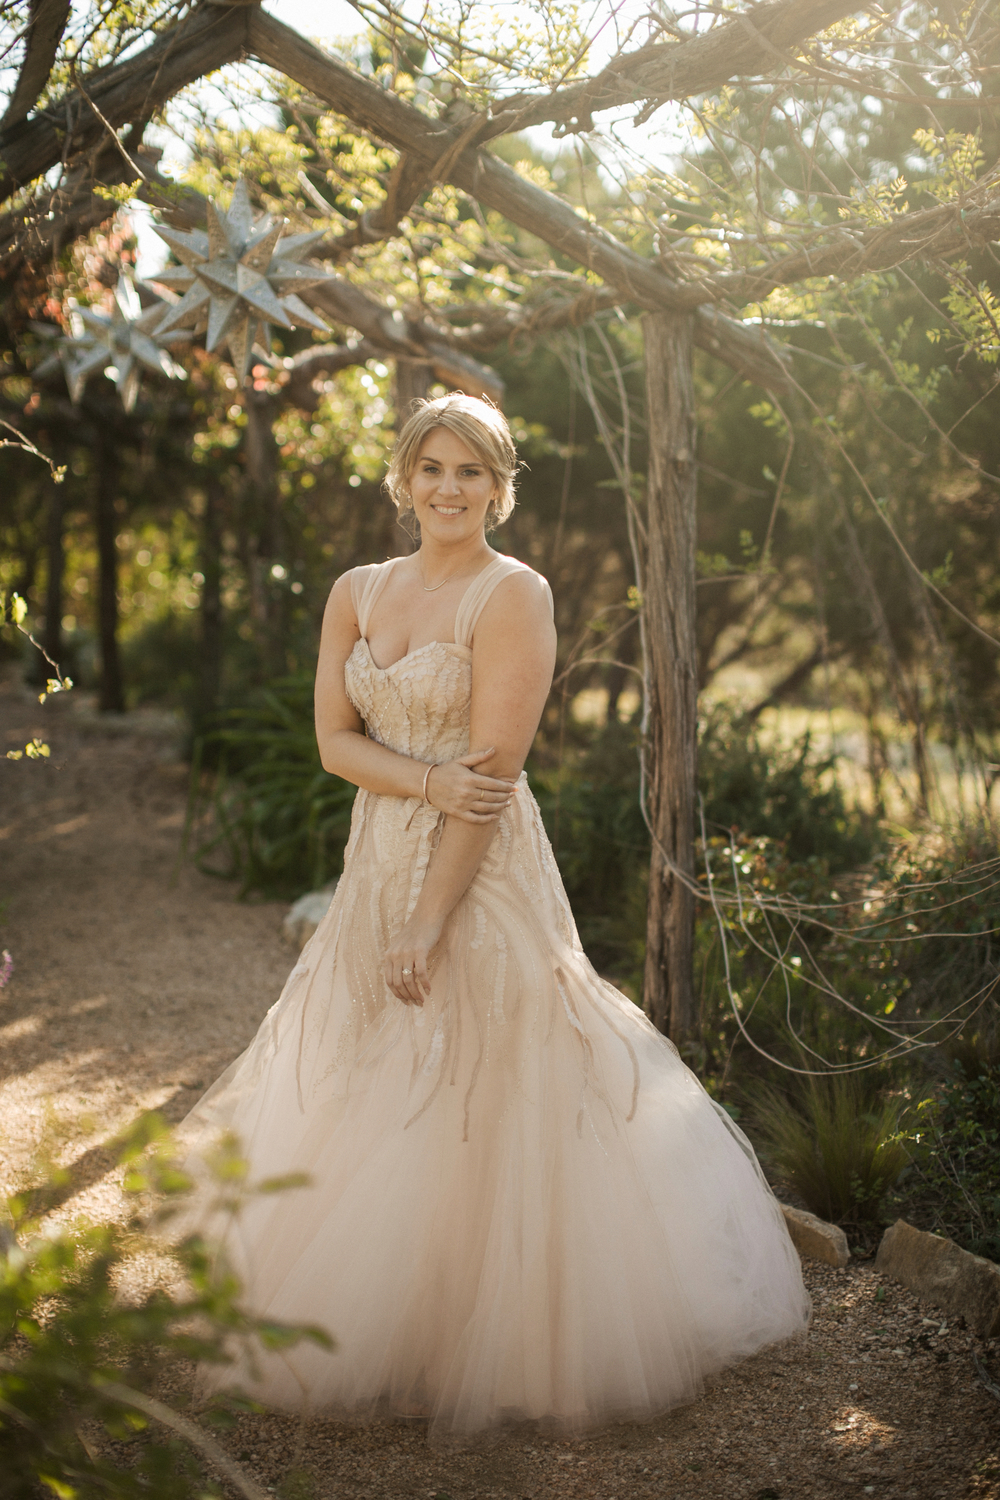 How gorgeous is her dress? She looks like a little magical woodland fairy.